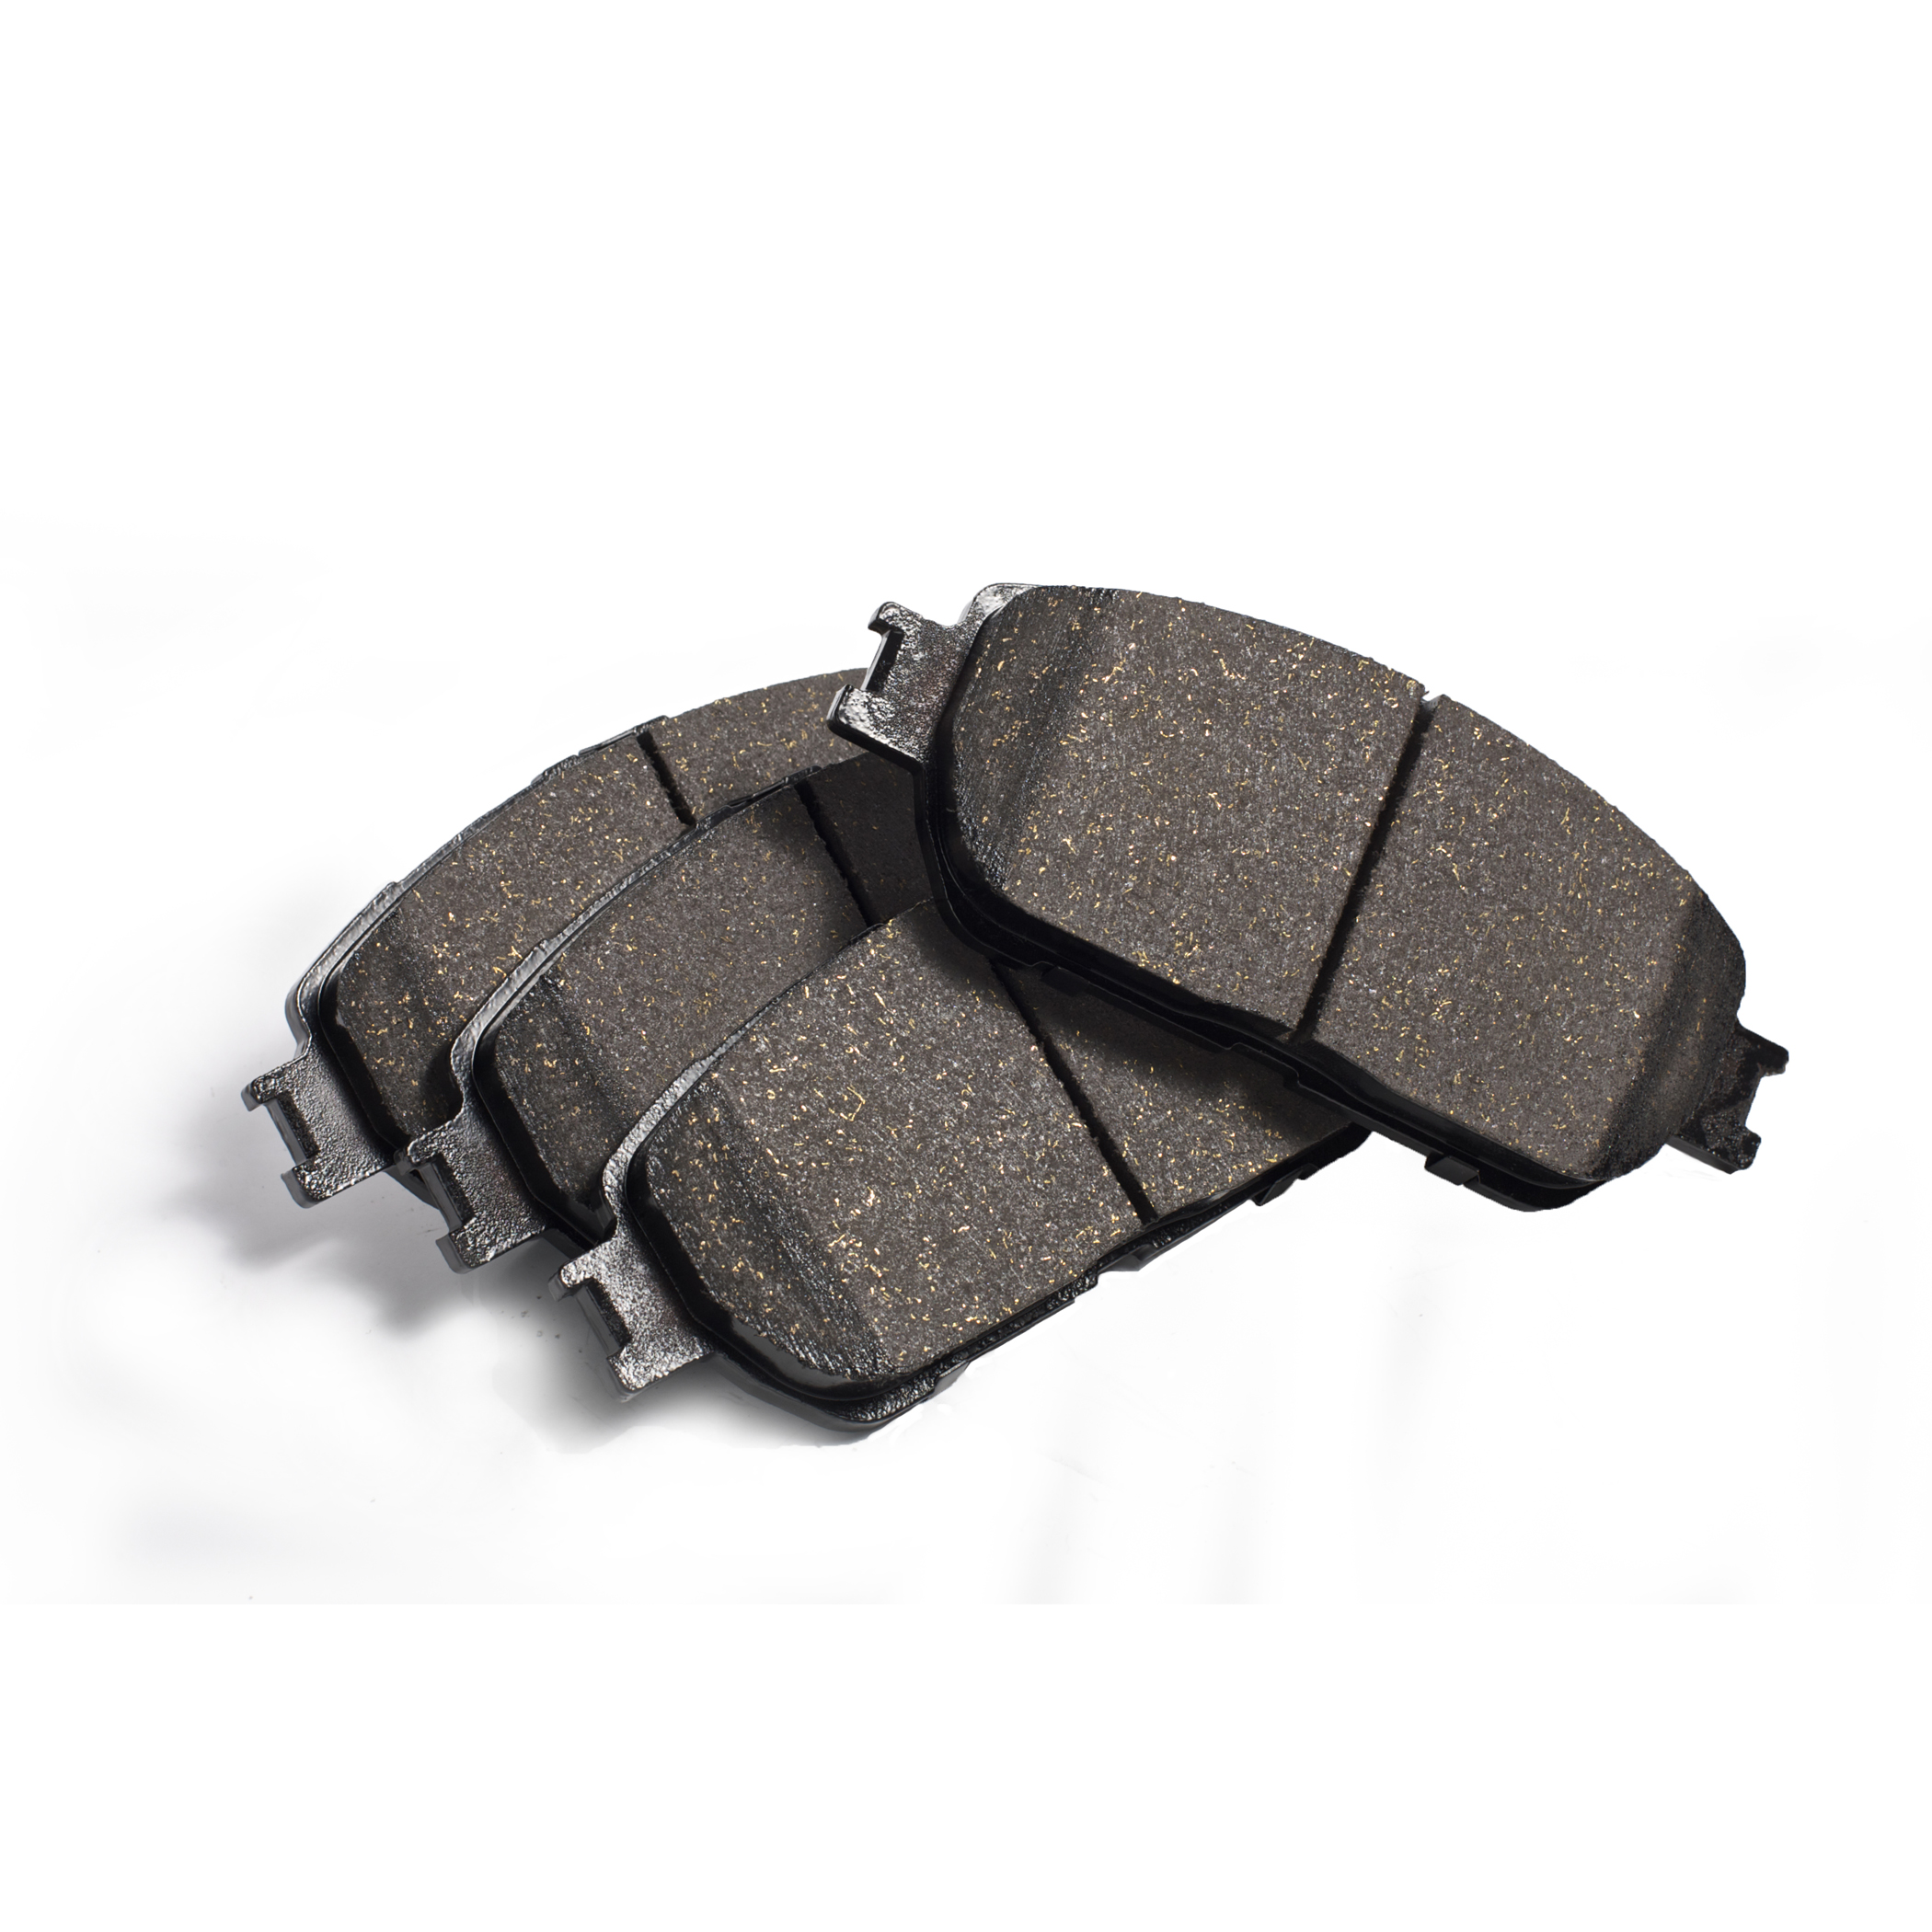 KFE906A-104 Ultra Quiet Advanced Brake Pad